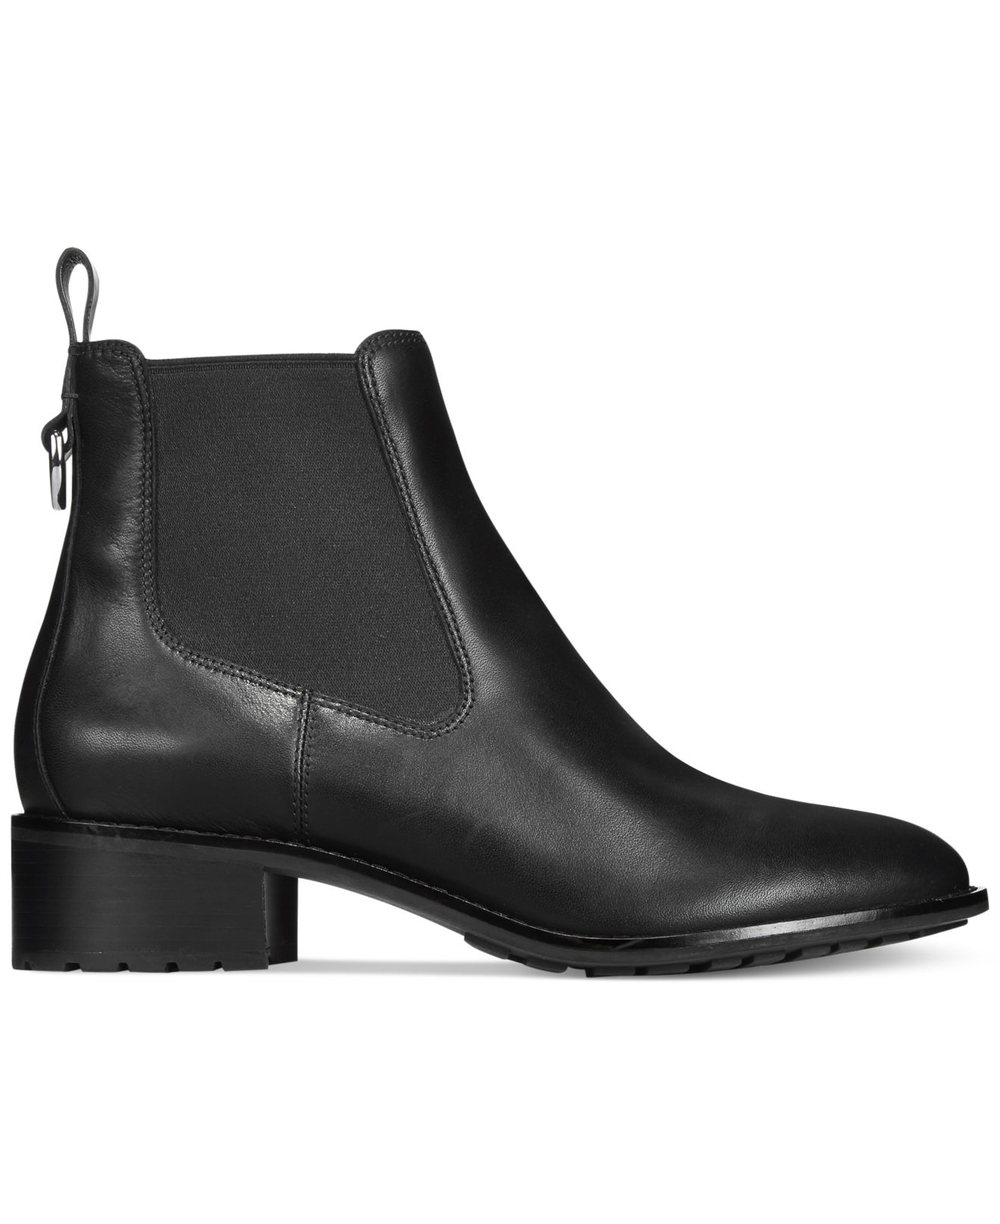 Newburg Waterproof Bootie. Available in black, brown. Cole Haan. $268.